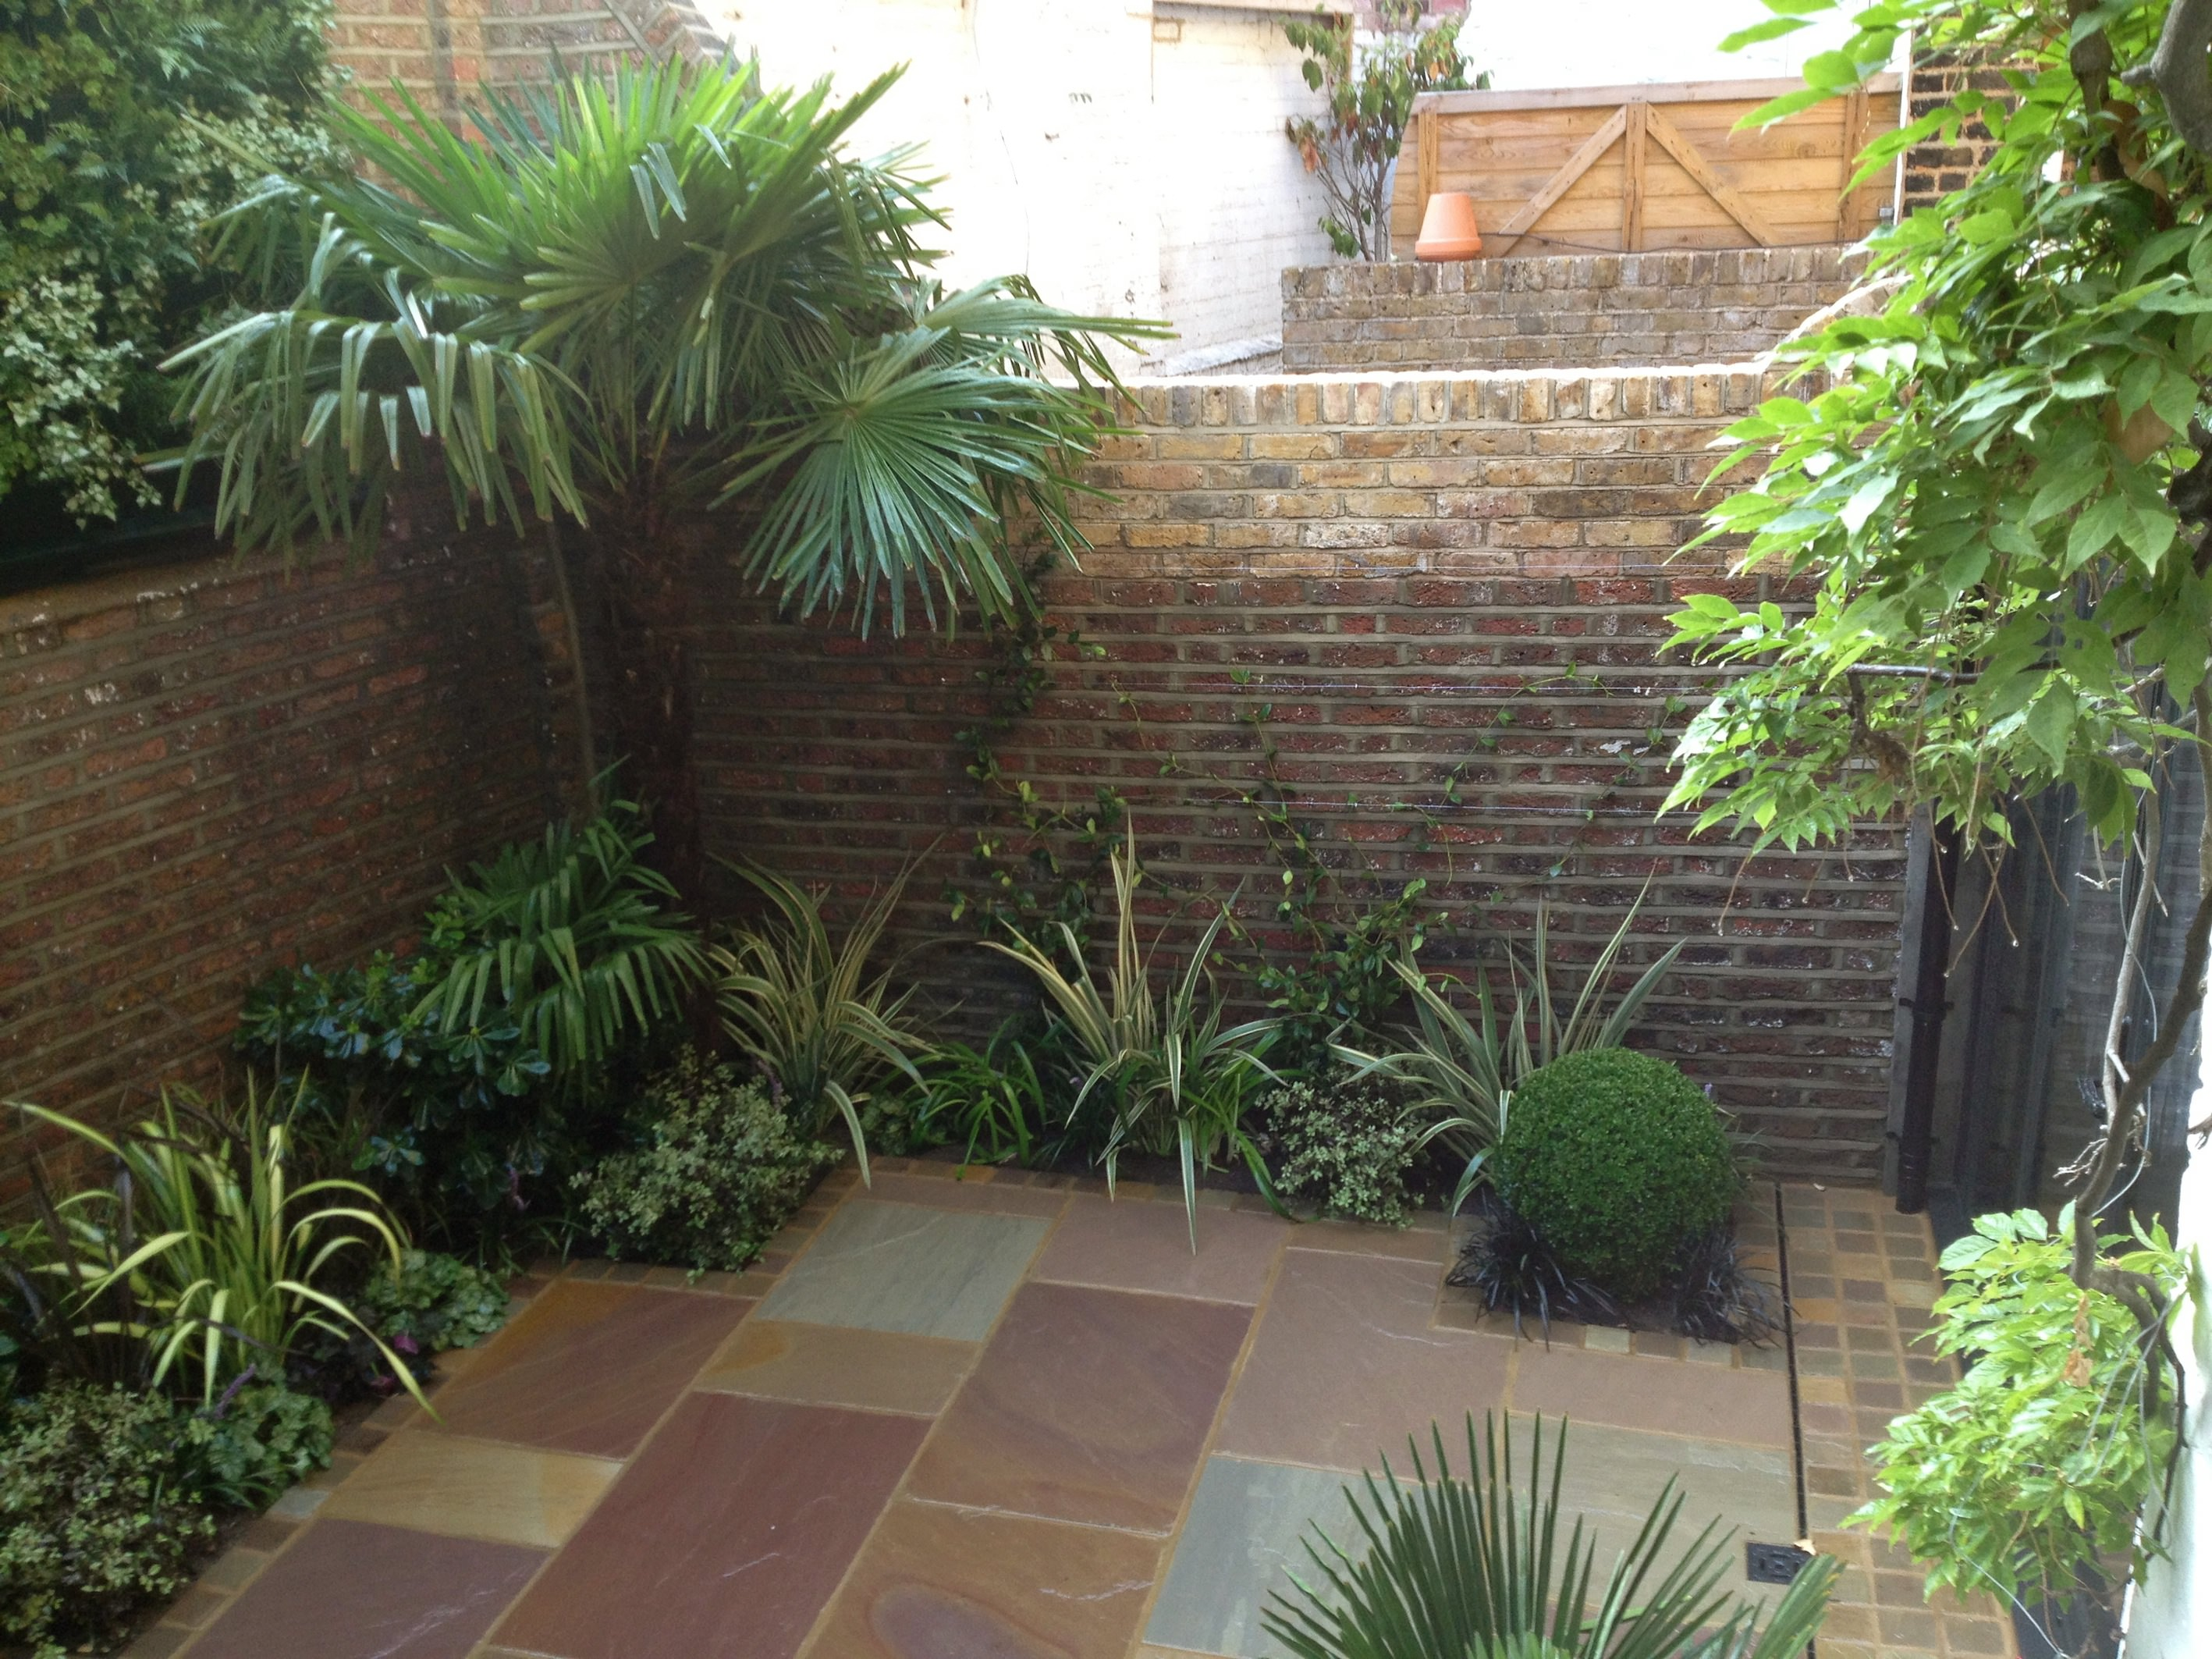 Low maintenance garden designs garden club london for Paved courtyard garden ideas